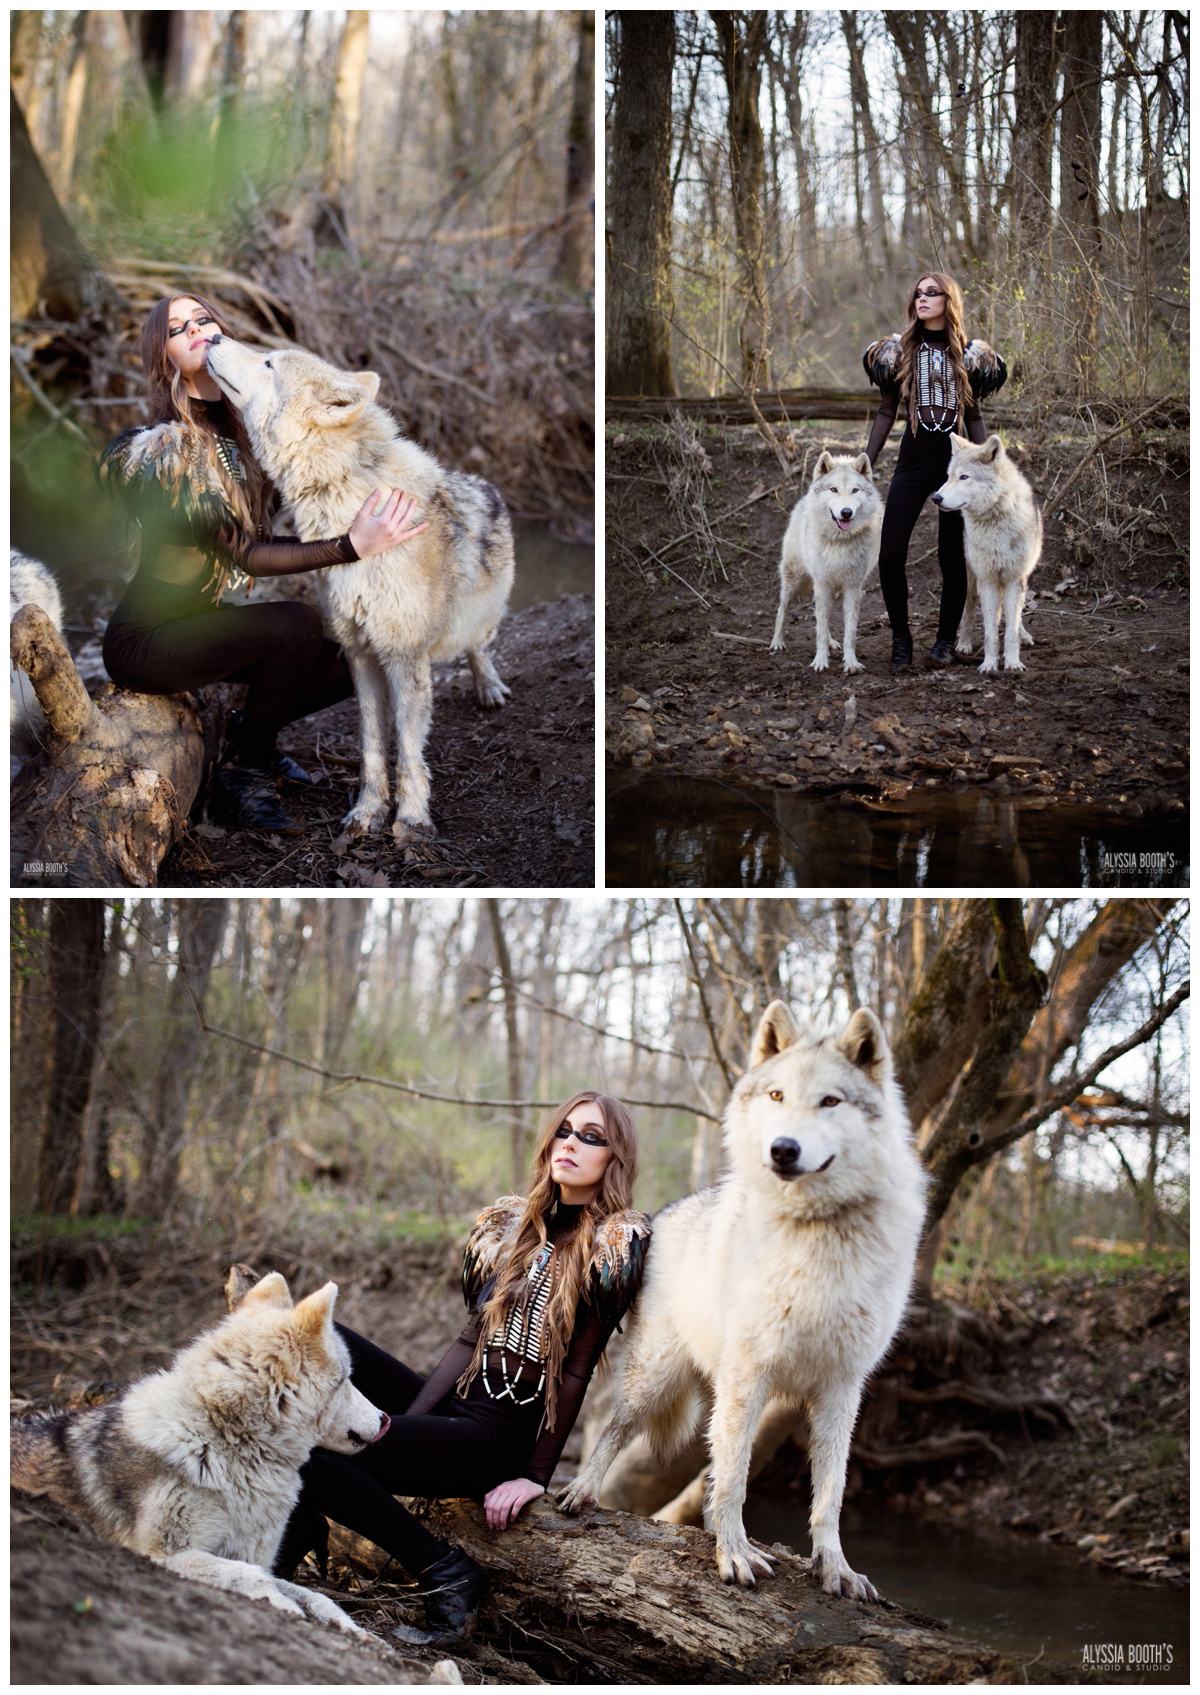 Fantasy Photoshoots | Wolf Photoshoot | Wolfdog | Ironwood wolves | Alyssia Booth's Candid & Studio | Fantasy Photoshoot | #wild #womenwhorunwithwolves #Whitewolf www.abcandidstudio.com